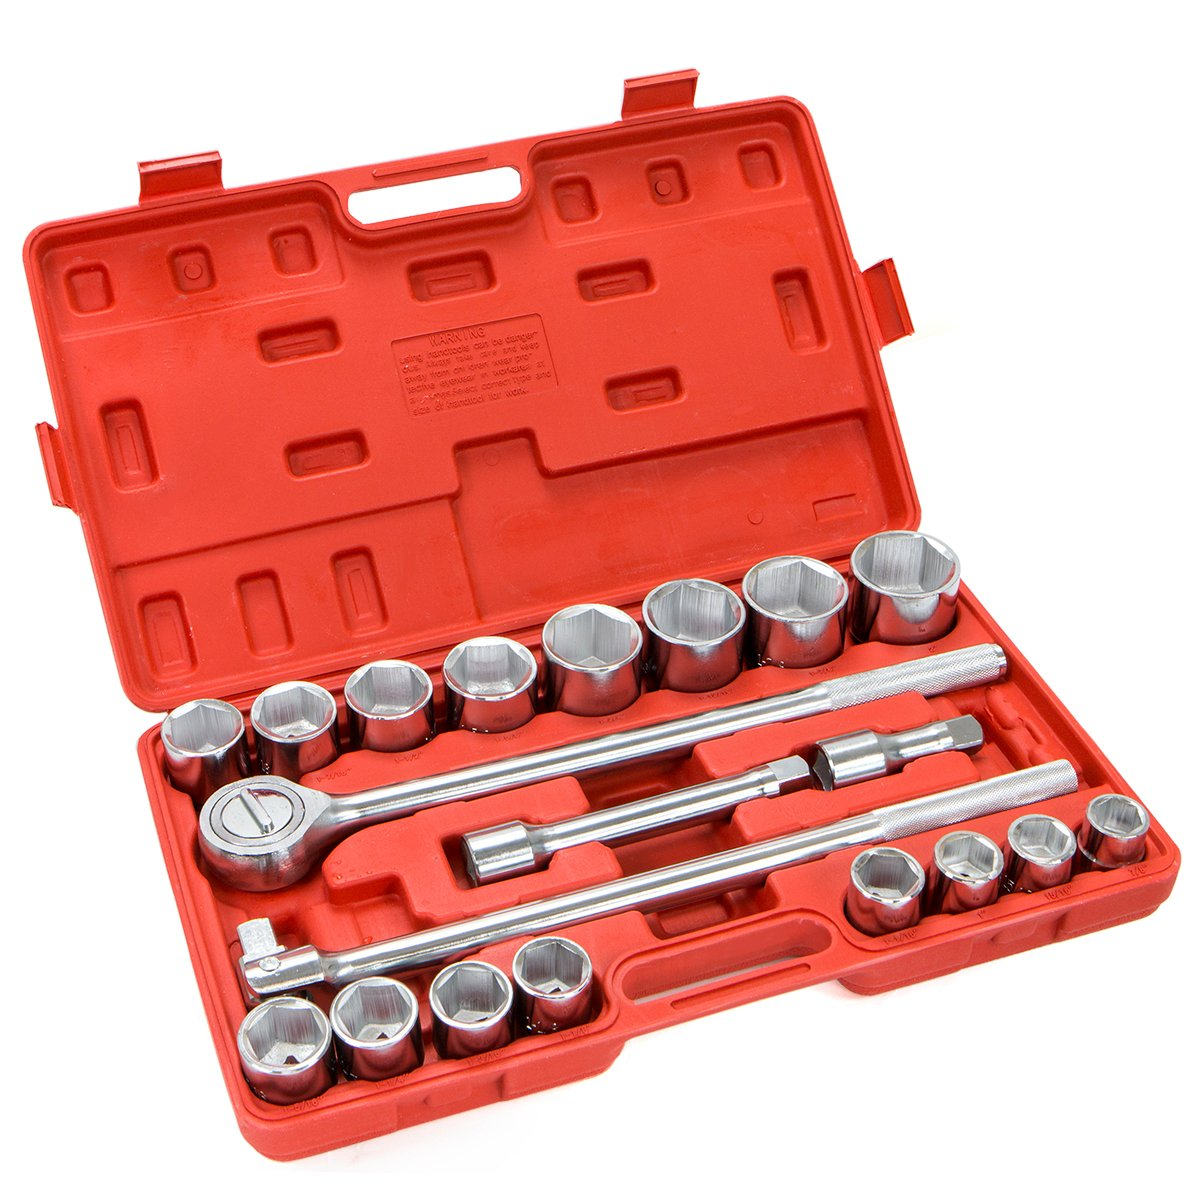 XtremepowerUS 21 Pieces 3//4 inch Drive Socket Wrench Set 6-Points Socket Ratchet Extension Bar SAE Set w//Case